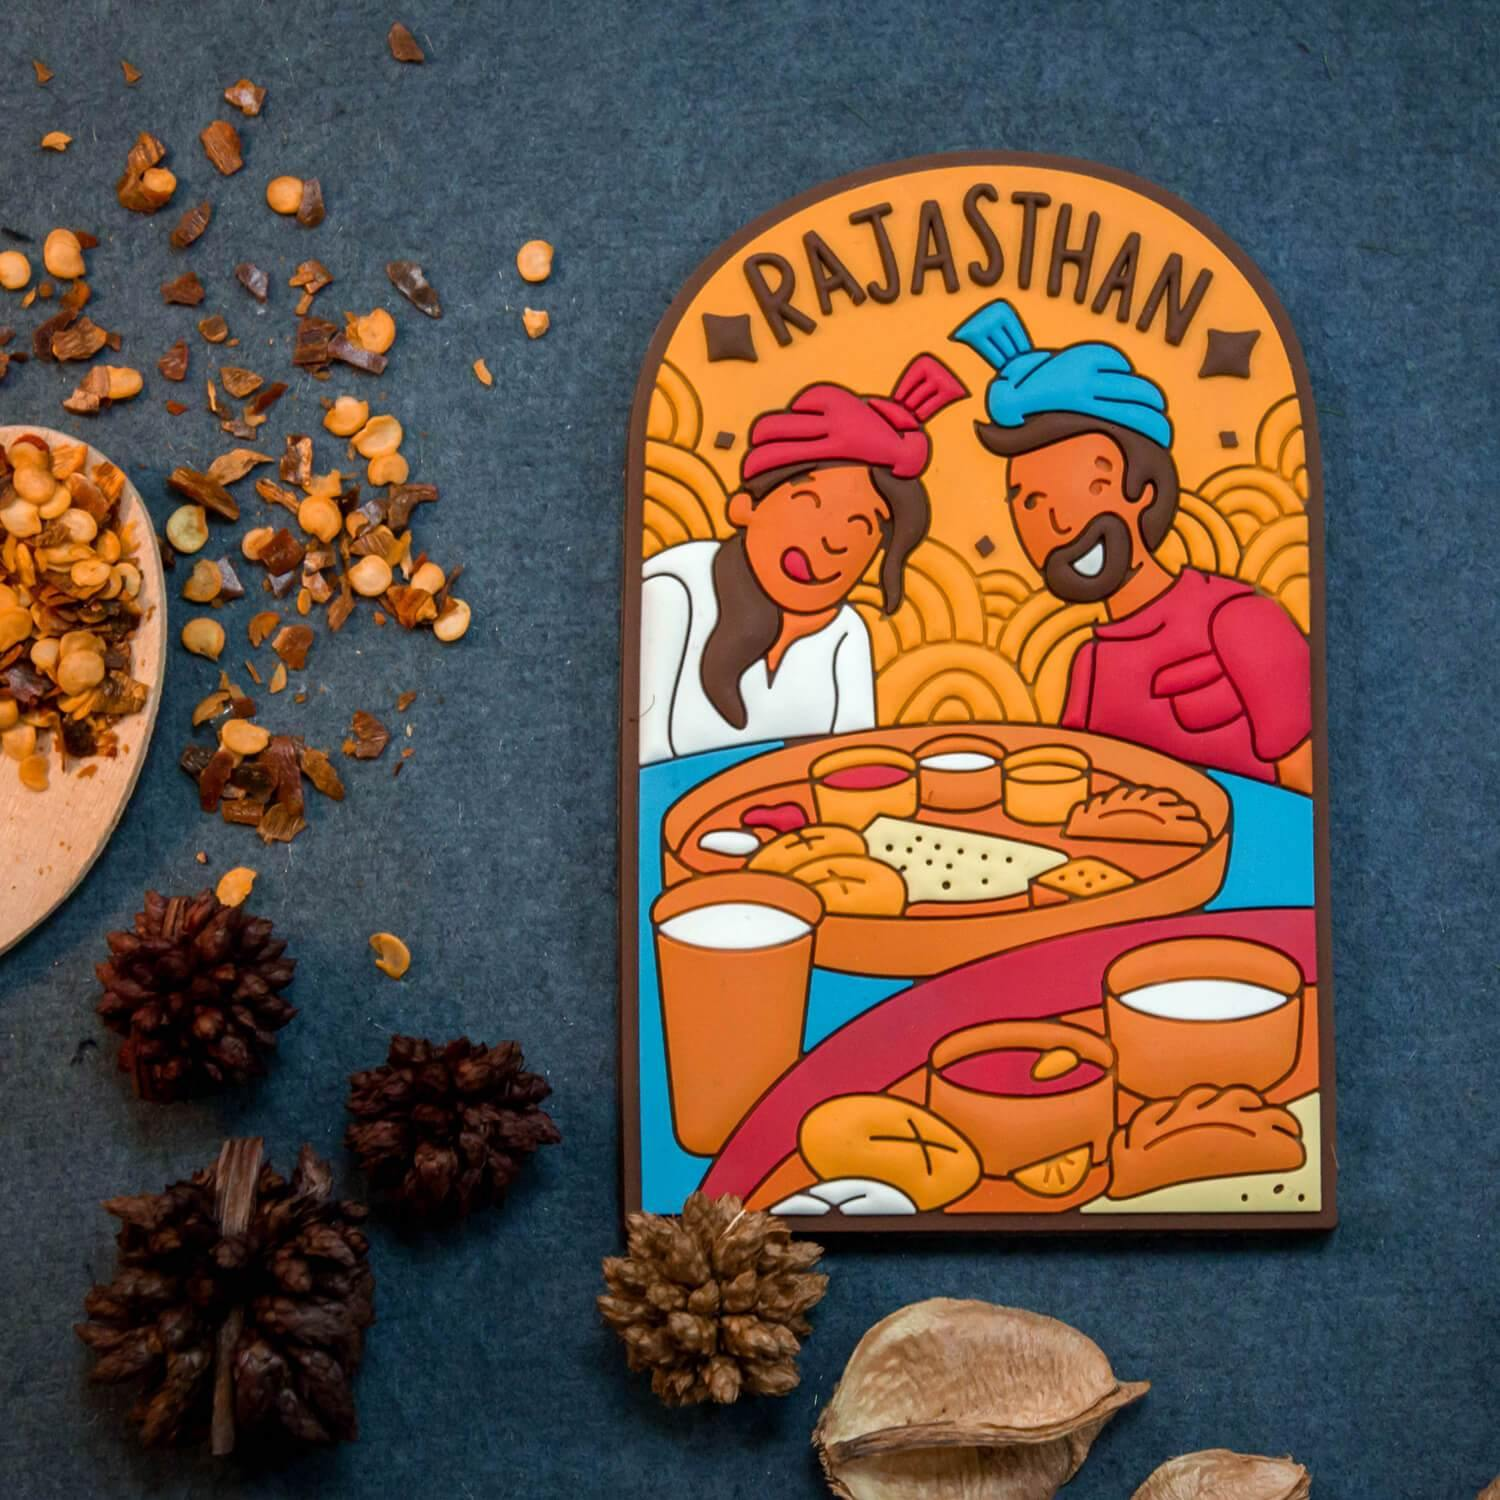 Rajasthan Fridge Magnets (Pack of 6) - Raahi